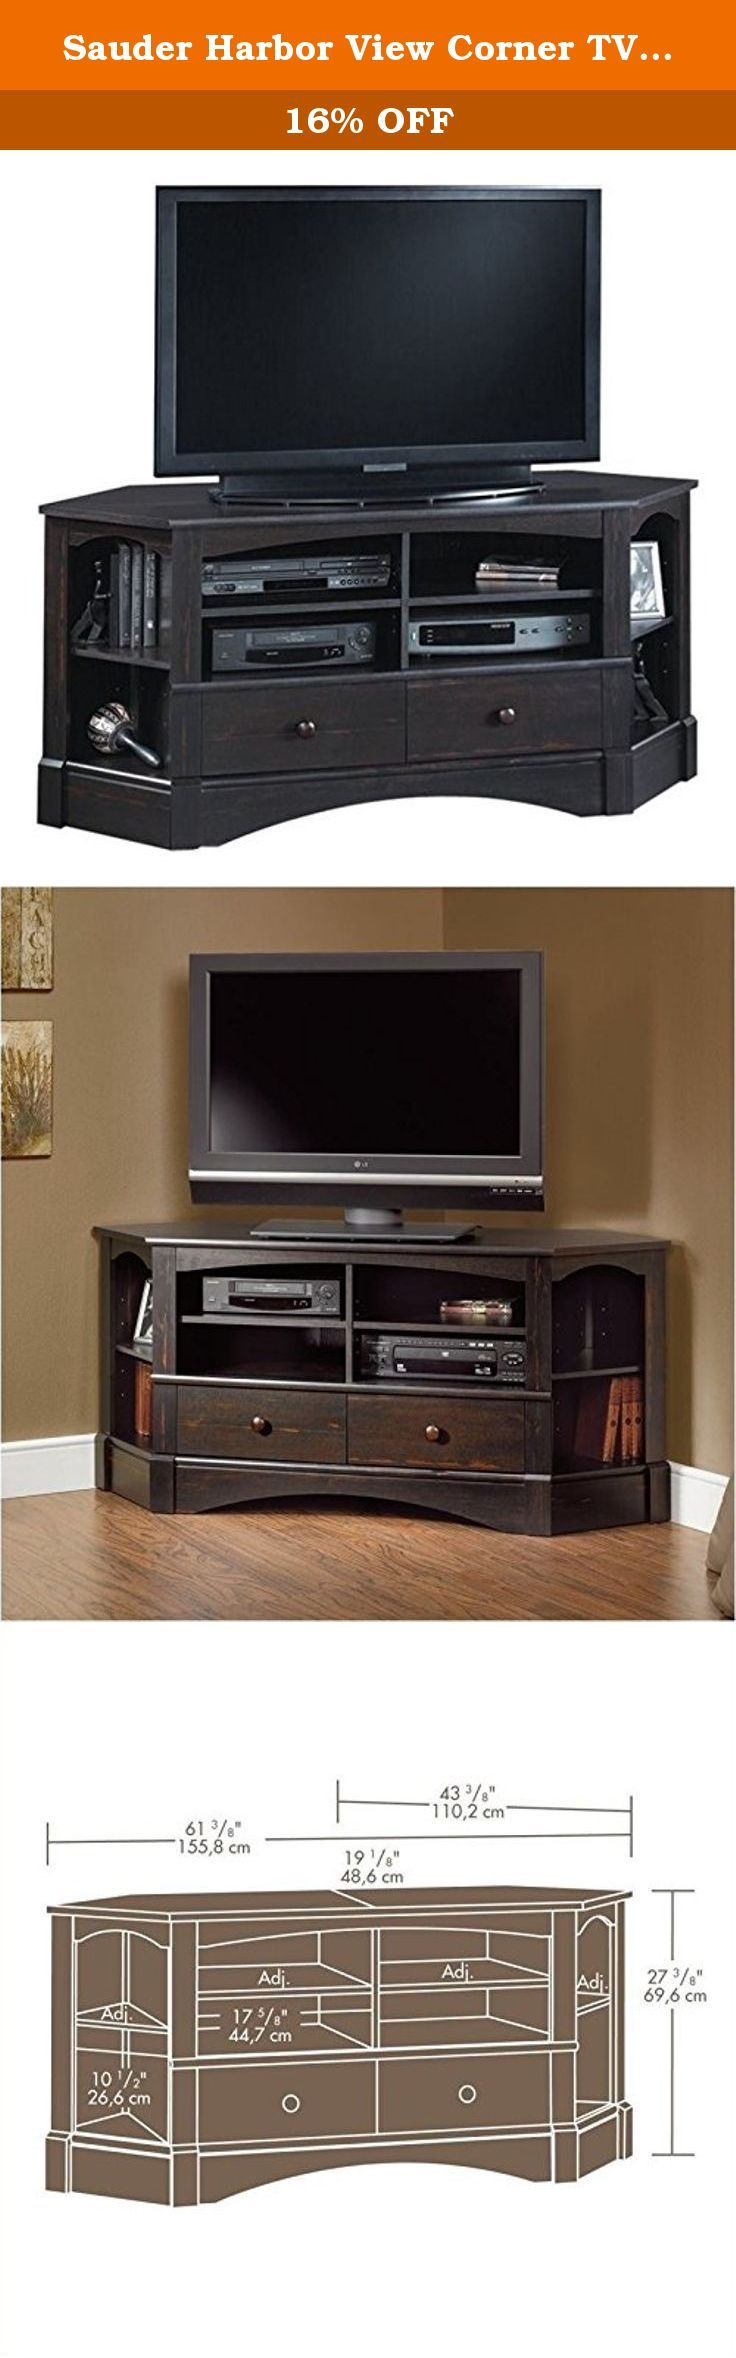 "Sauder Harbor View Corner TV Stand in Antiqued Paint. Holds up to a 42"" TV - Two drawers provide hidden storage - Display area in each corner includes adjustable shelf."